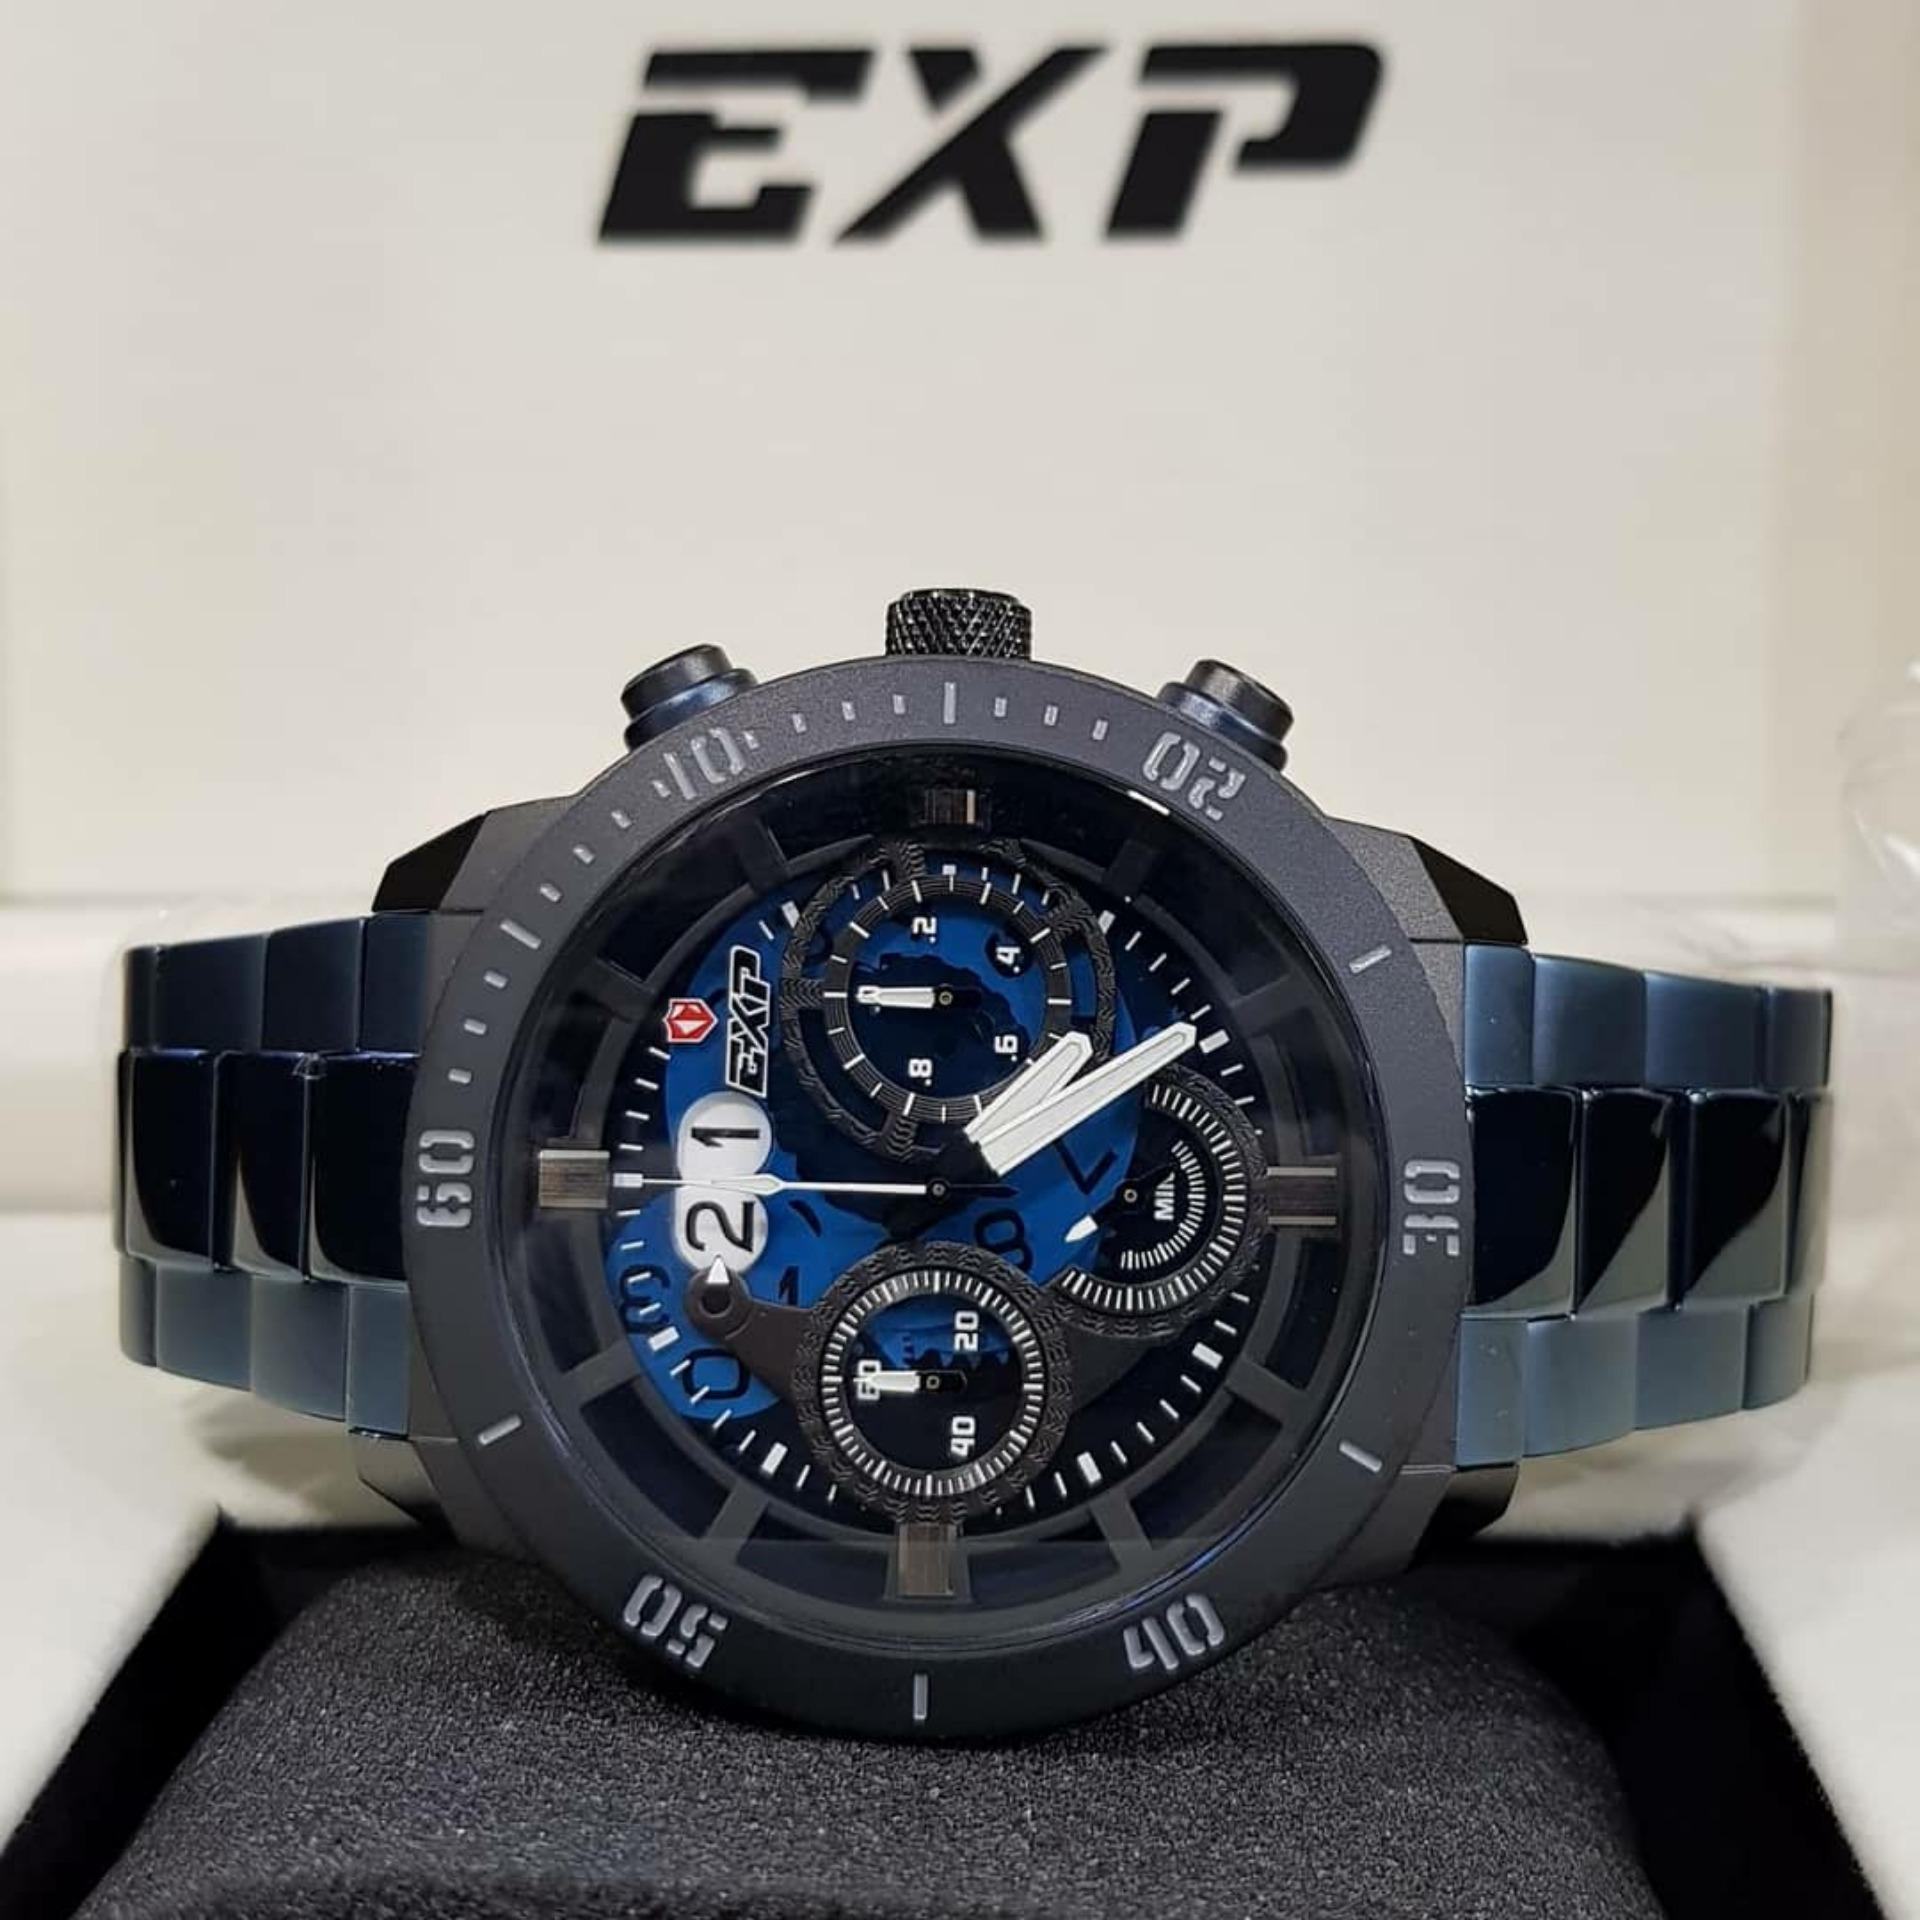 Harga Jual Smith Wesson Sww 900 Blu Tritium Diver Jam Tangan Pria Expedition Automatic Limited Edition 6656malssba Stainless Steel Buy Sell Cheapest Exp 6761 Best Quality Product Deals